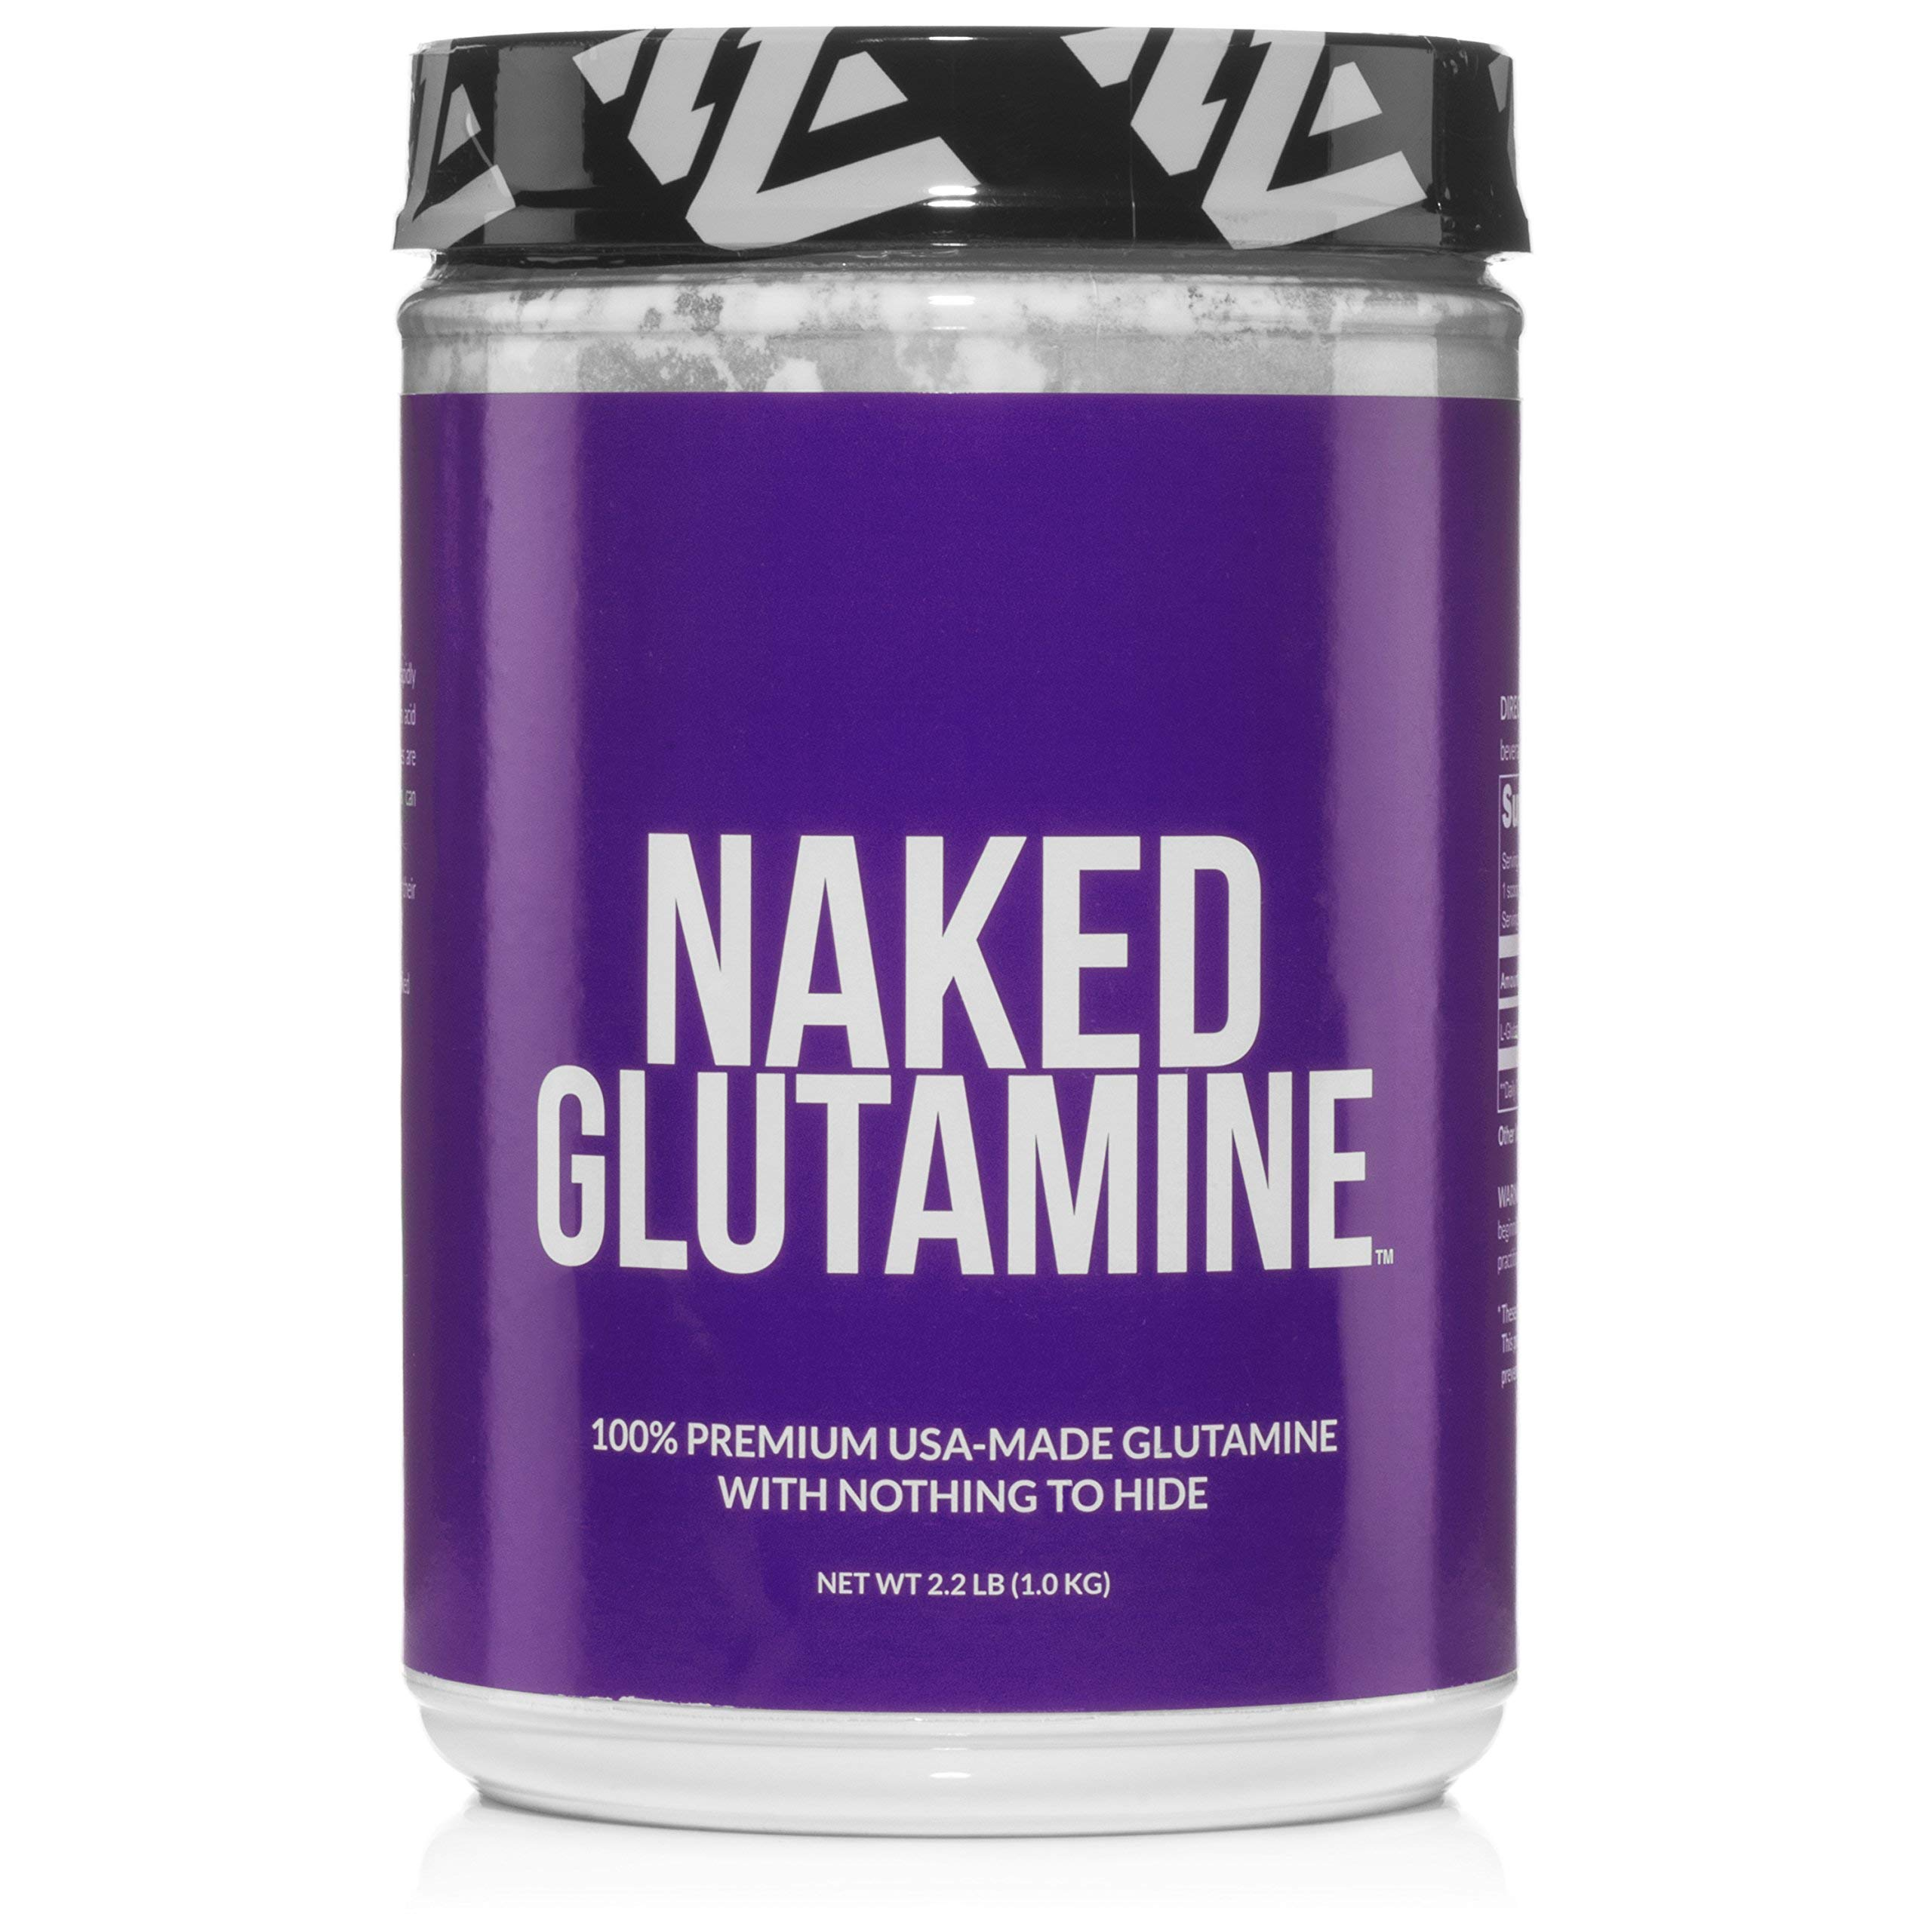 Pure L-Glutamine Made in the USA - 200 Servings - 1,000g, 2.2lb Bulk, Vegan, Non-GMO, Gluten and Soy Free. Minimize Muscle Breakdown & Improve Protein Synthesis. Nothing Artificial